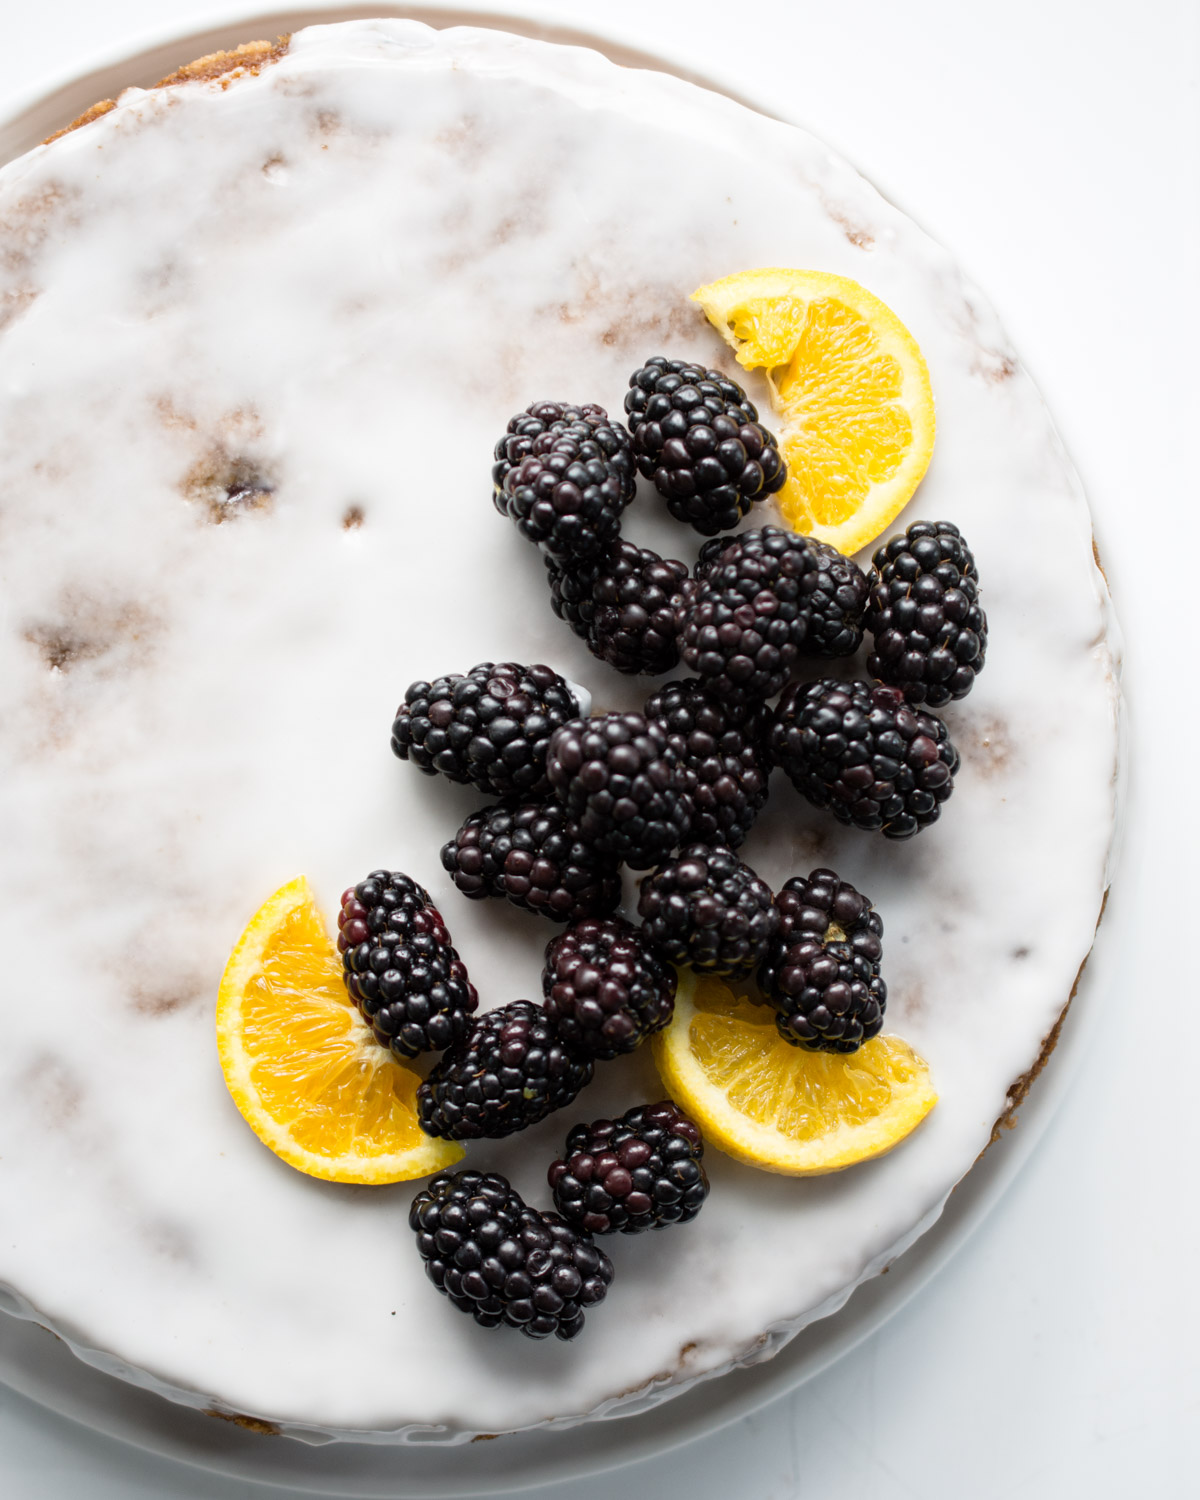 Orange Blackberry Olive oil Cake garnished with fresh blackberries and orange slices.